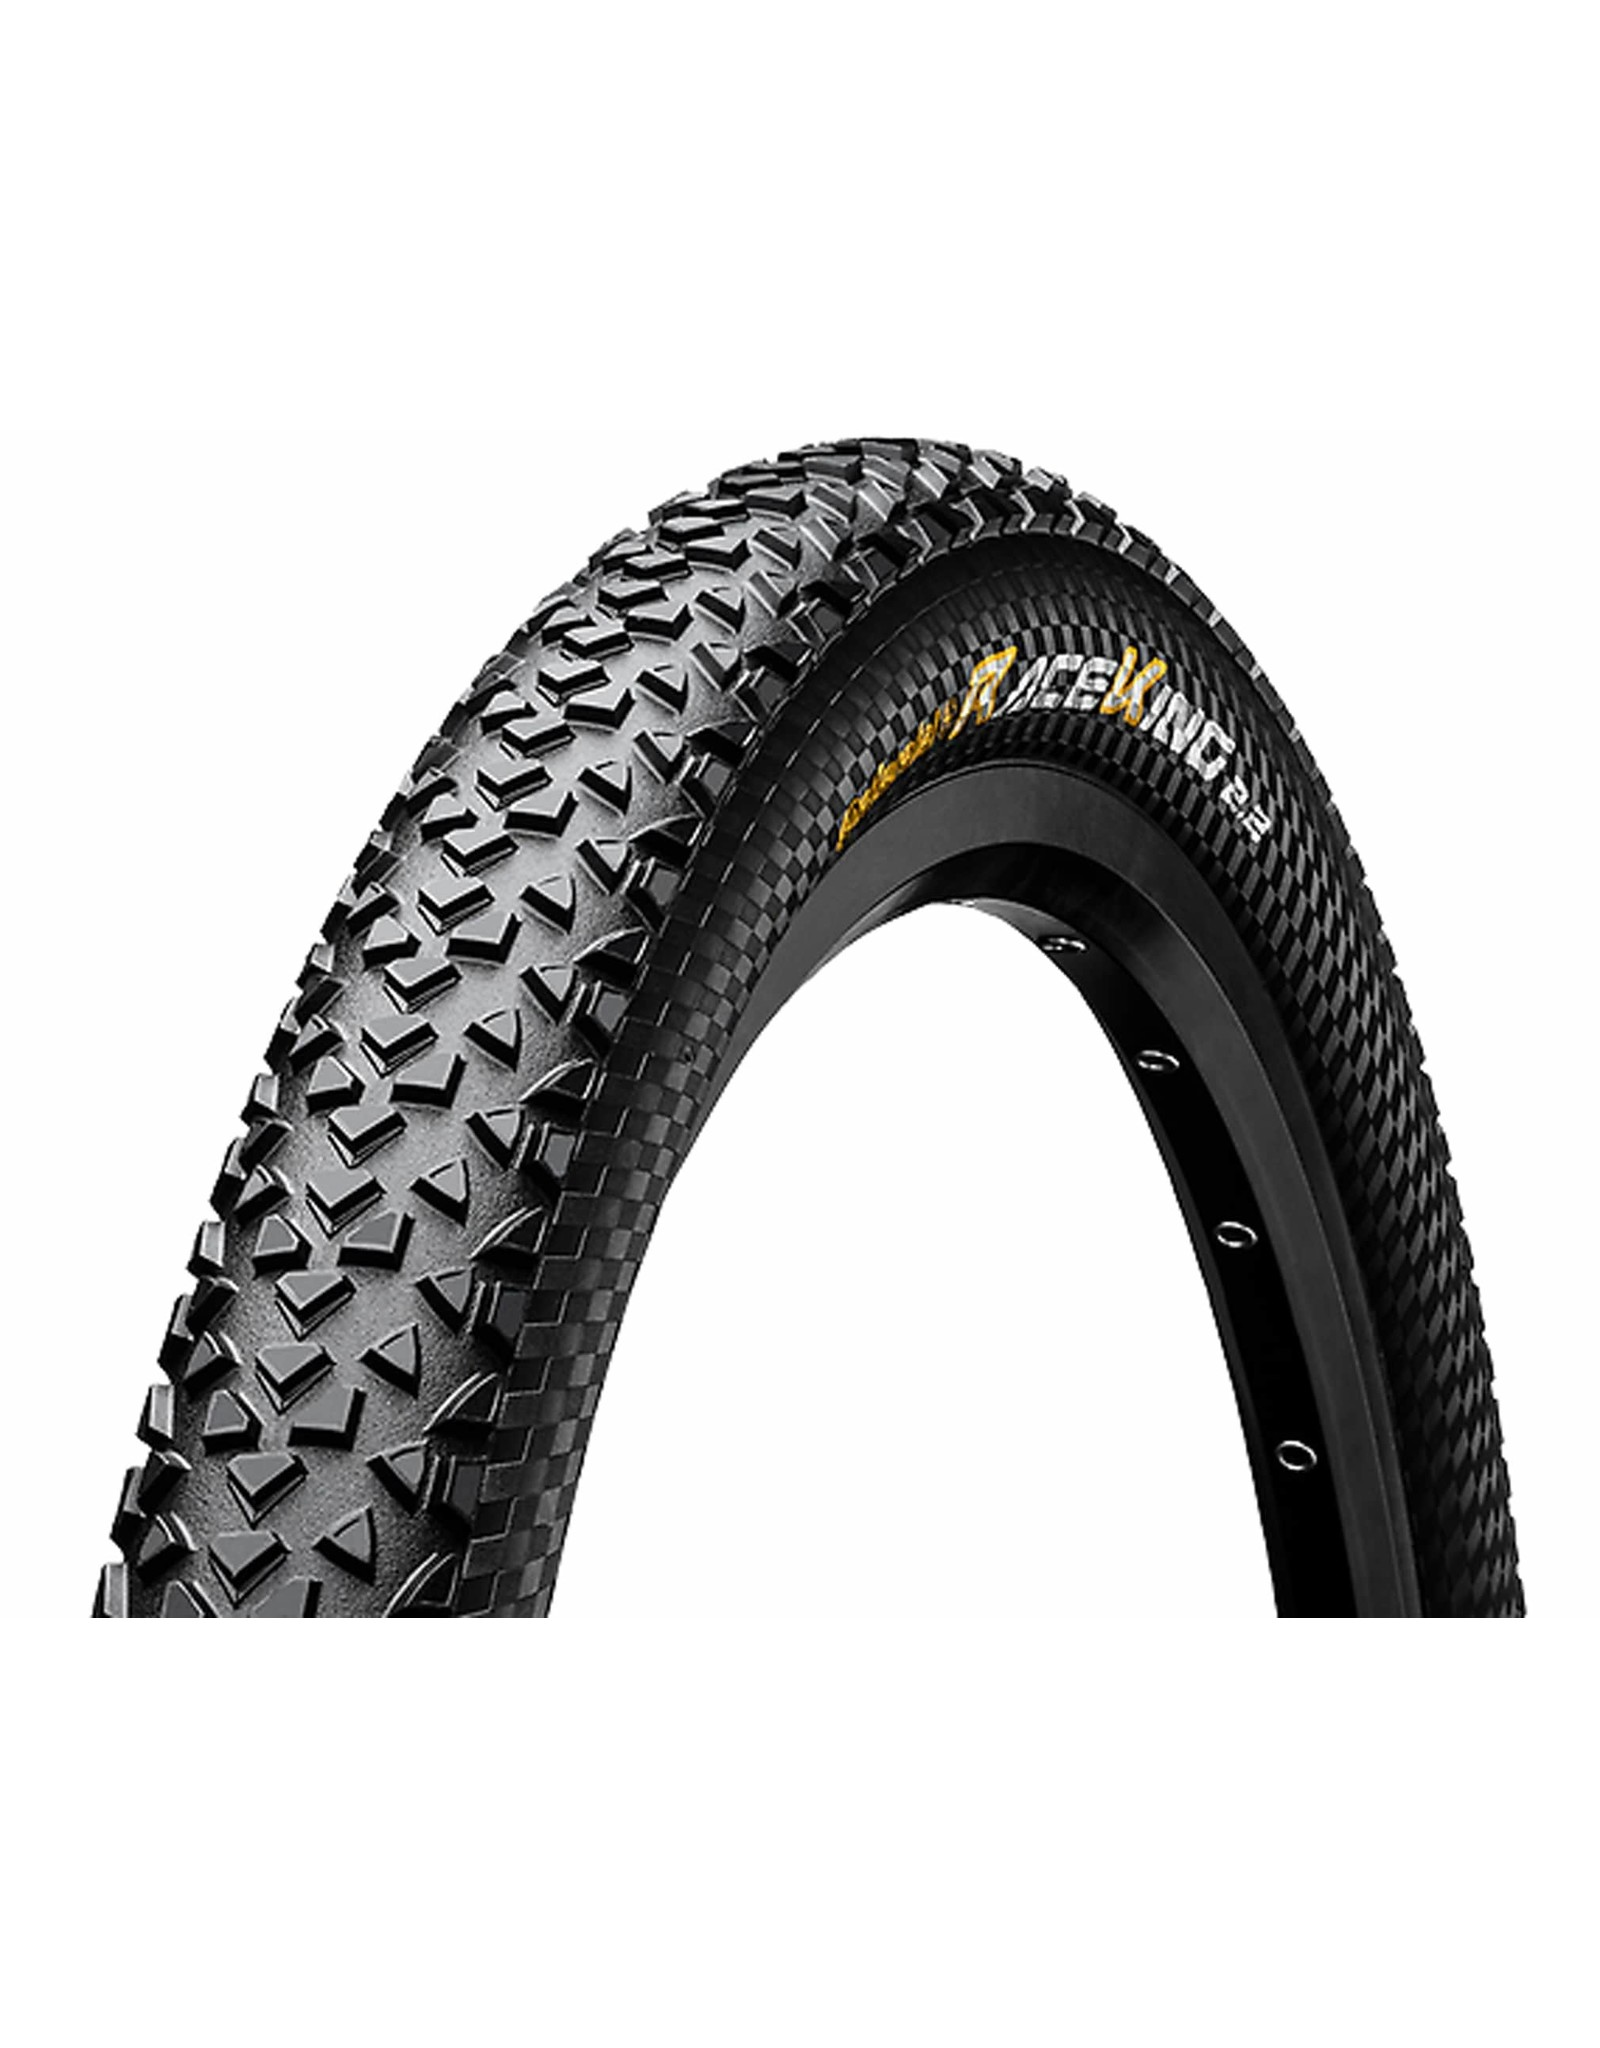 CONTINENTAL ESSENTIAL - RACE KING 27.5 X 2.2 PLIABLE SHEILDWALL